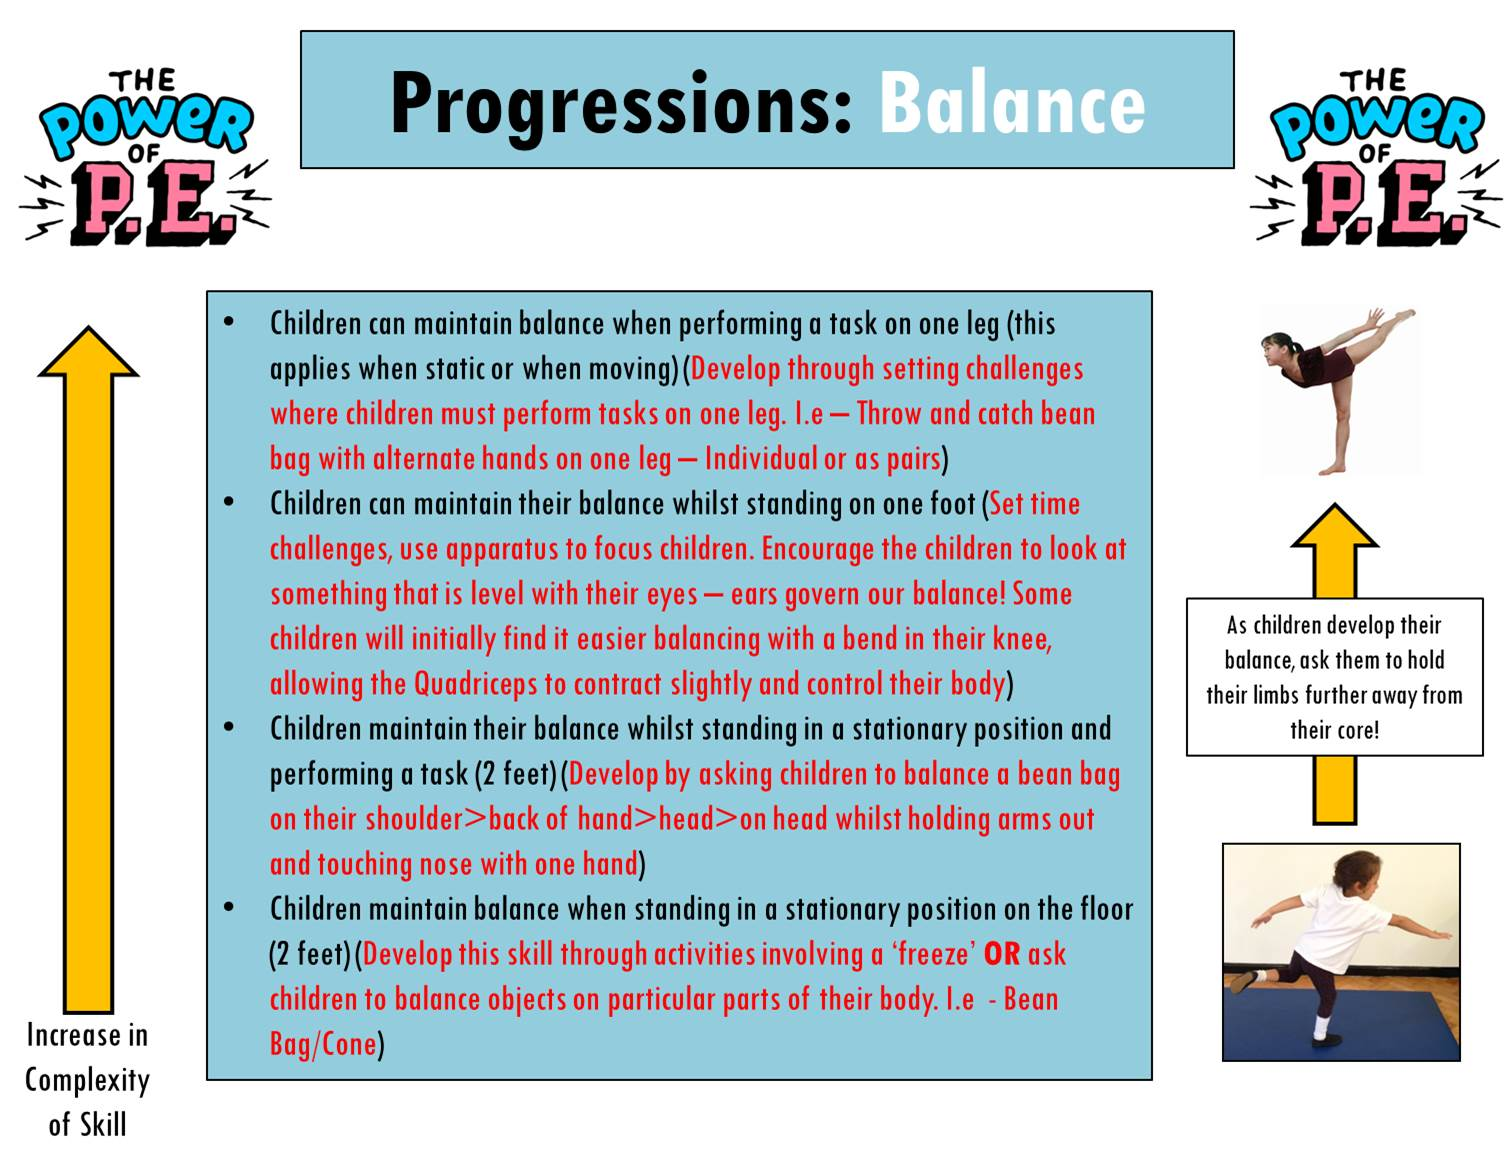 Balance Progression Power of P.E